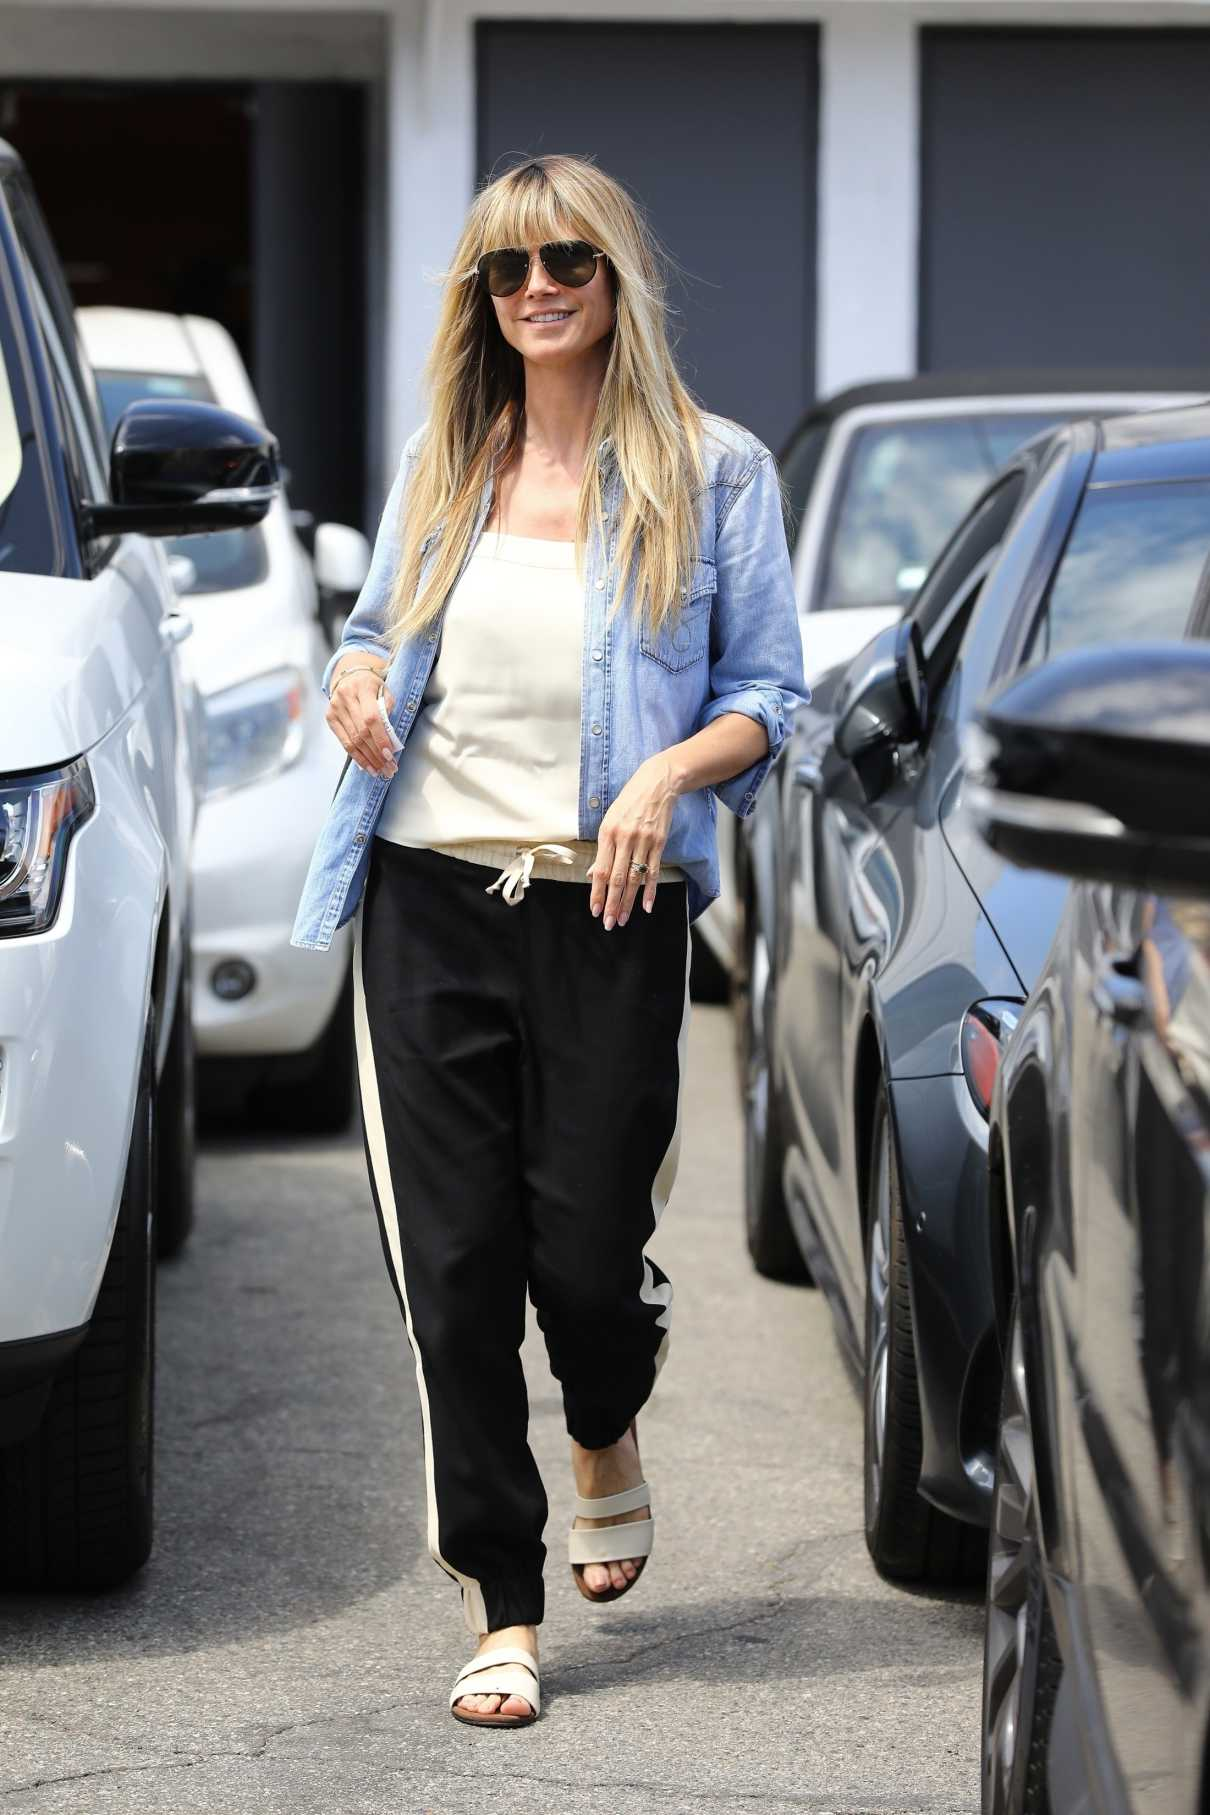 Heidi Klum in a Blue Denin Shirt